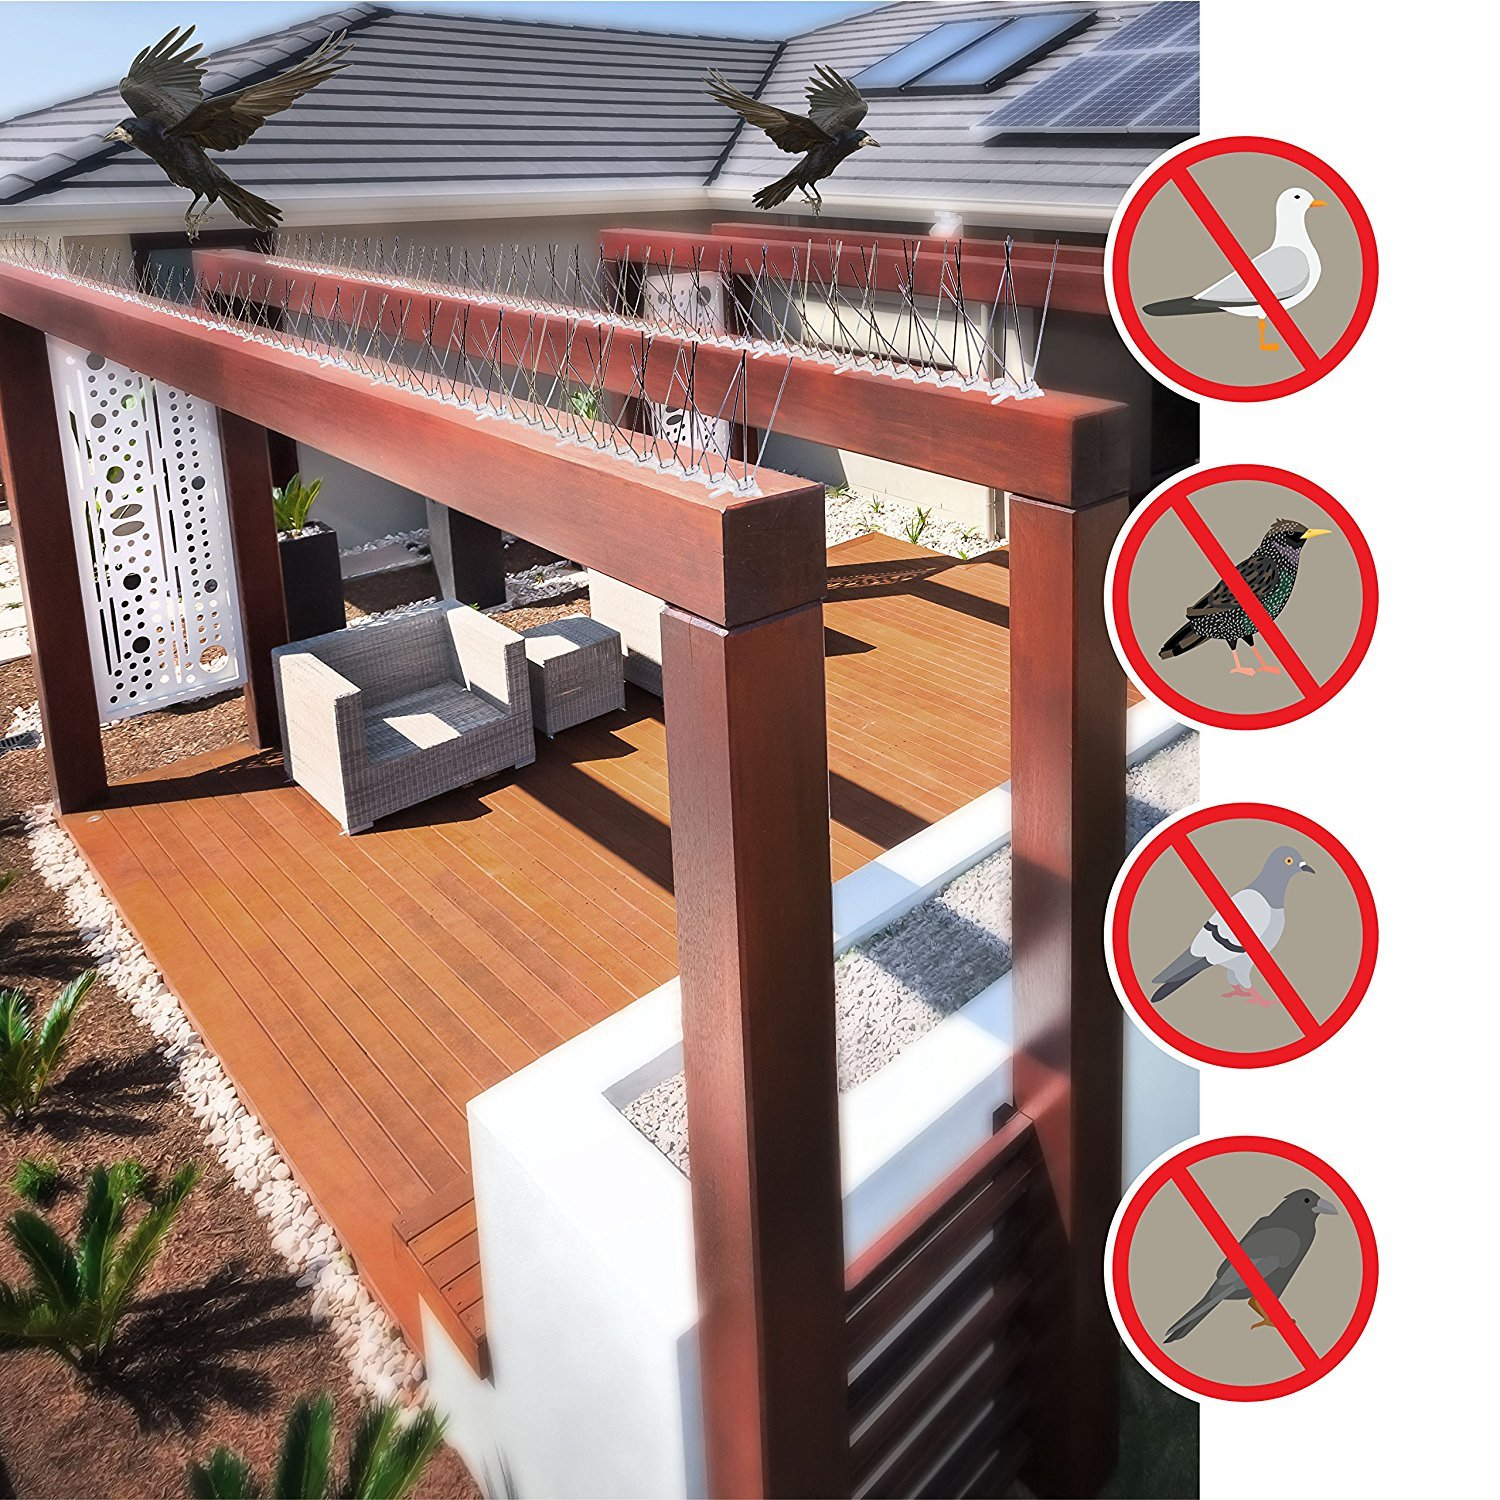 Garden Mile® Thin Plastic Bird and Pigeon Spikes 1 Metre Packs. A humane Bird and Pigeon Control Deterrent. Humane pigeon and bird pest control anti-roosting repellent. For Garden Walls Fences Roofs Etc. (1)